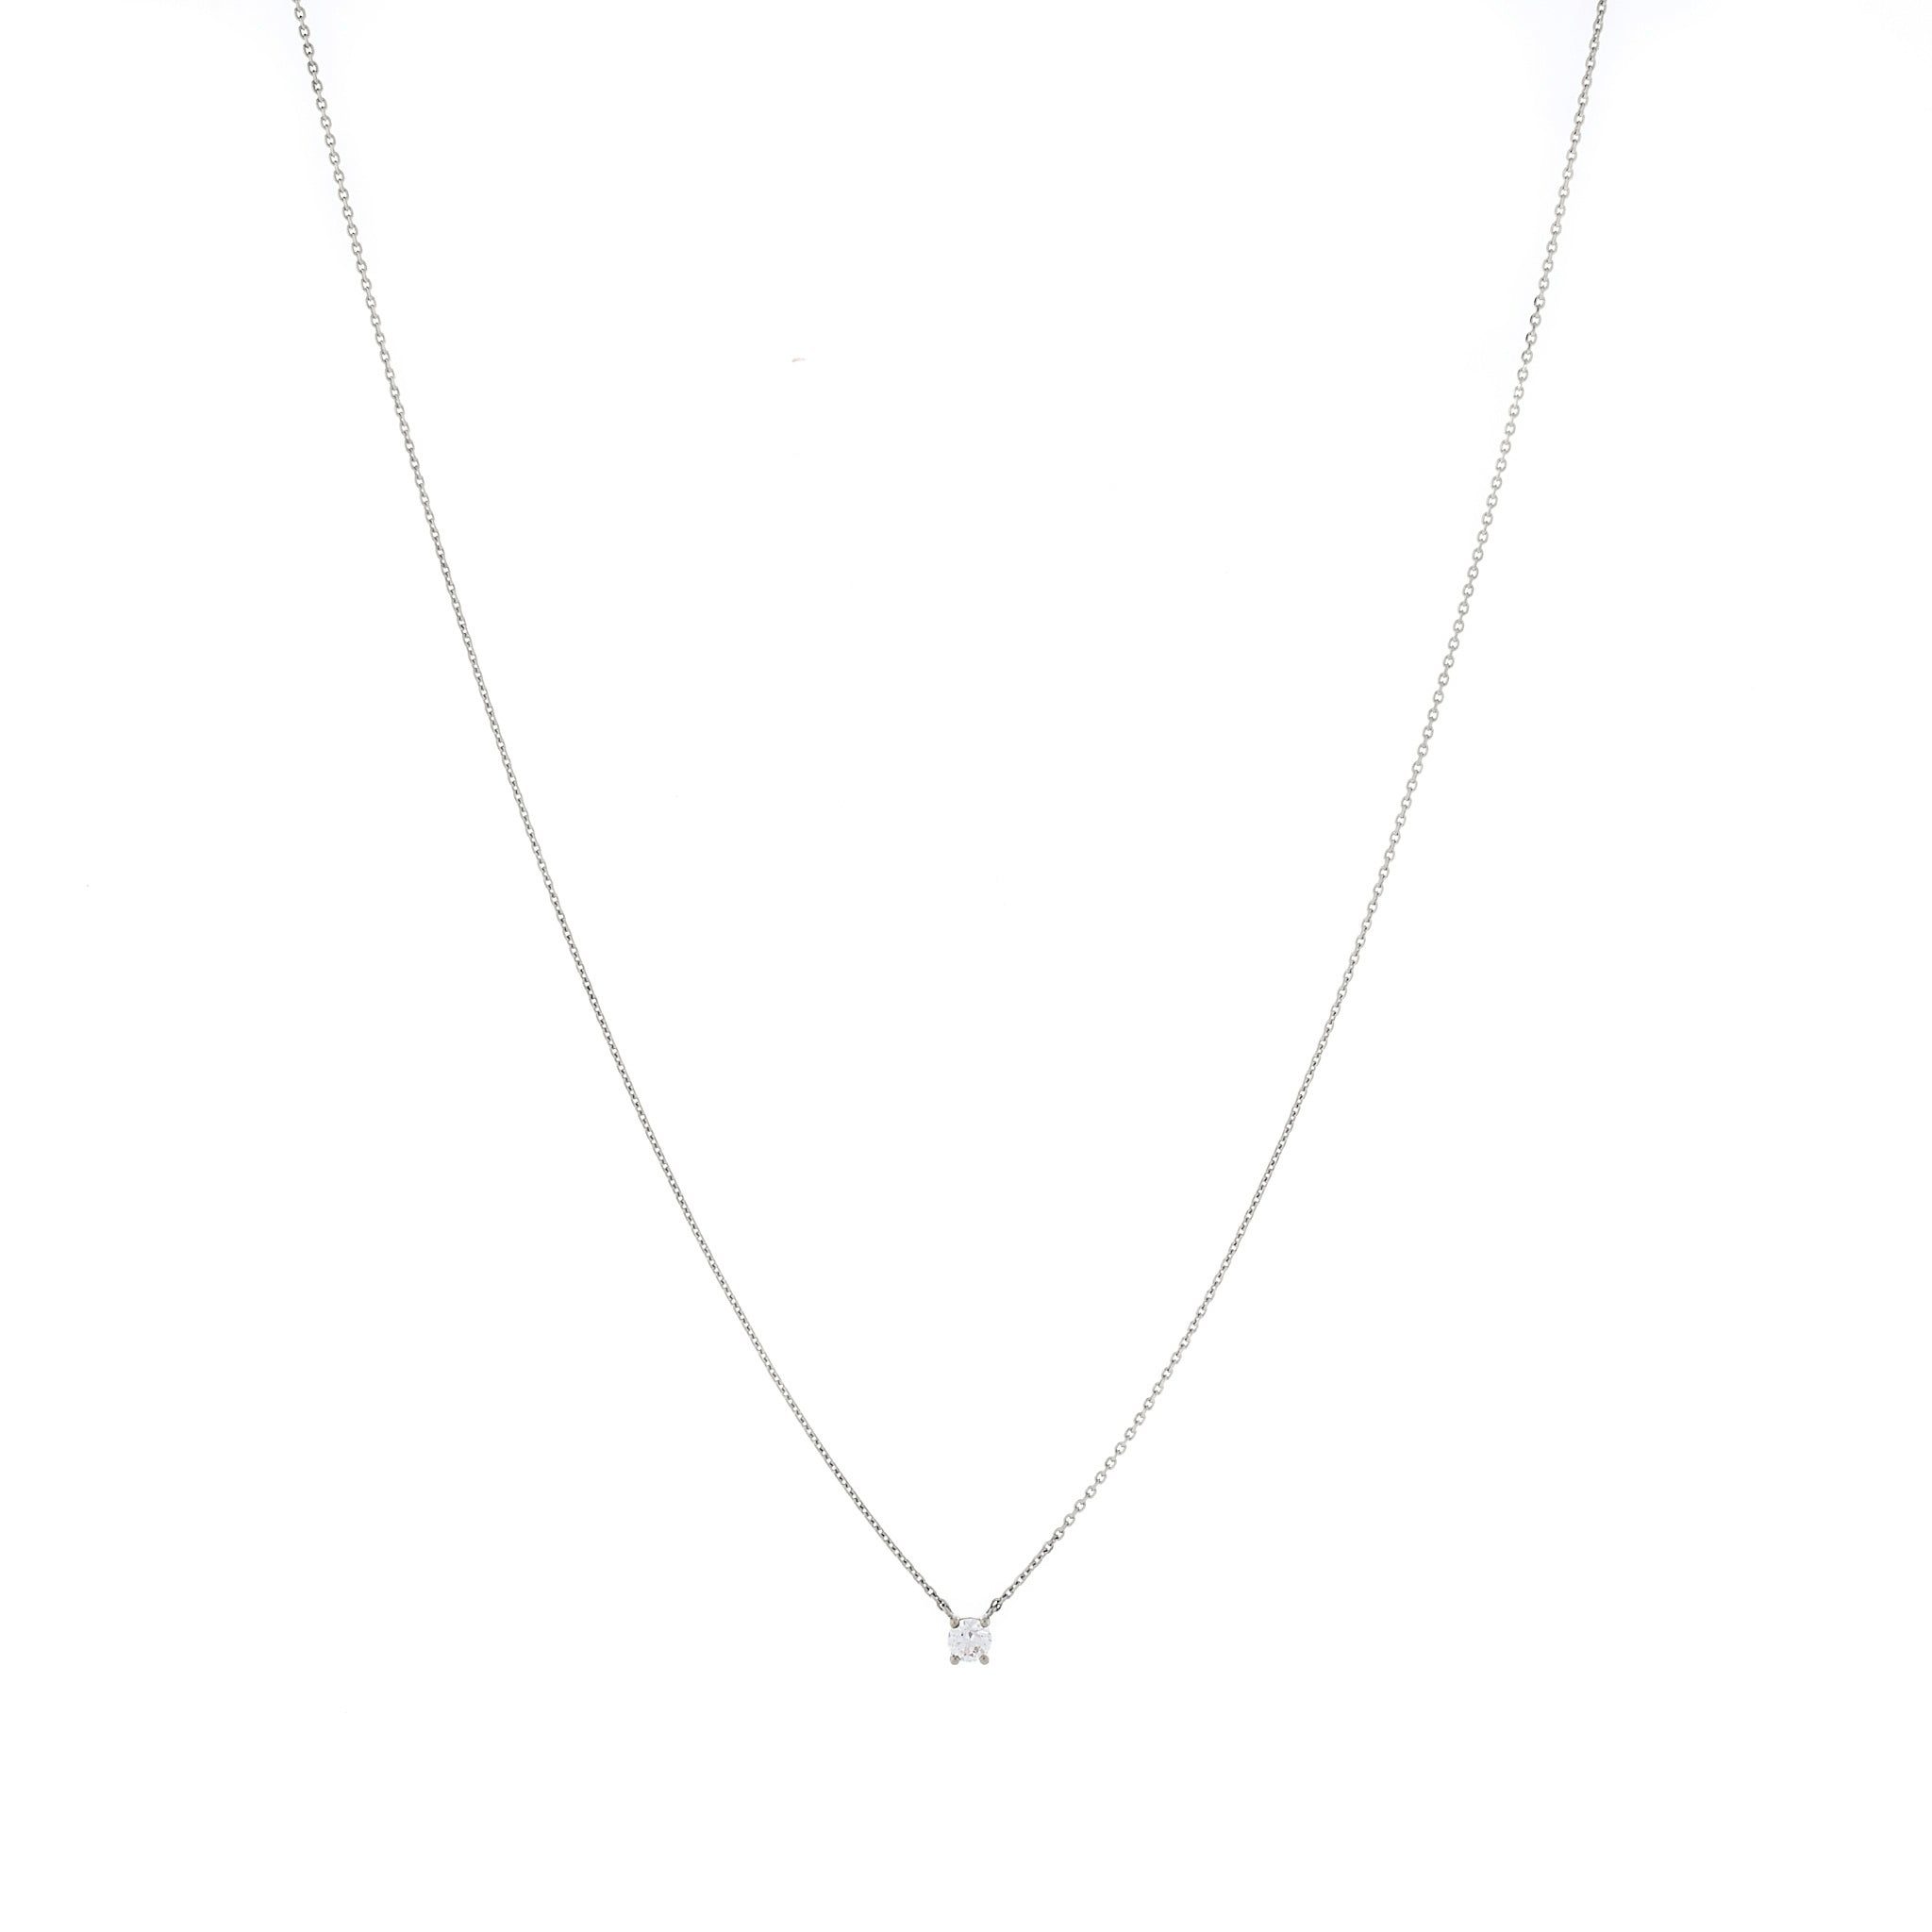 Claw-set Cubic Zirconia Silver Necklace